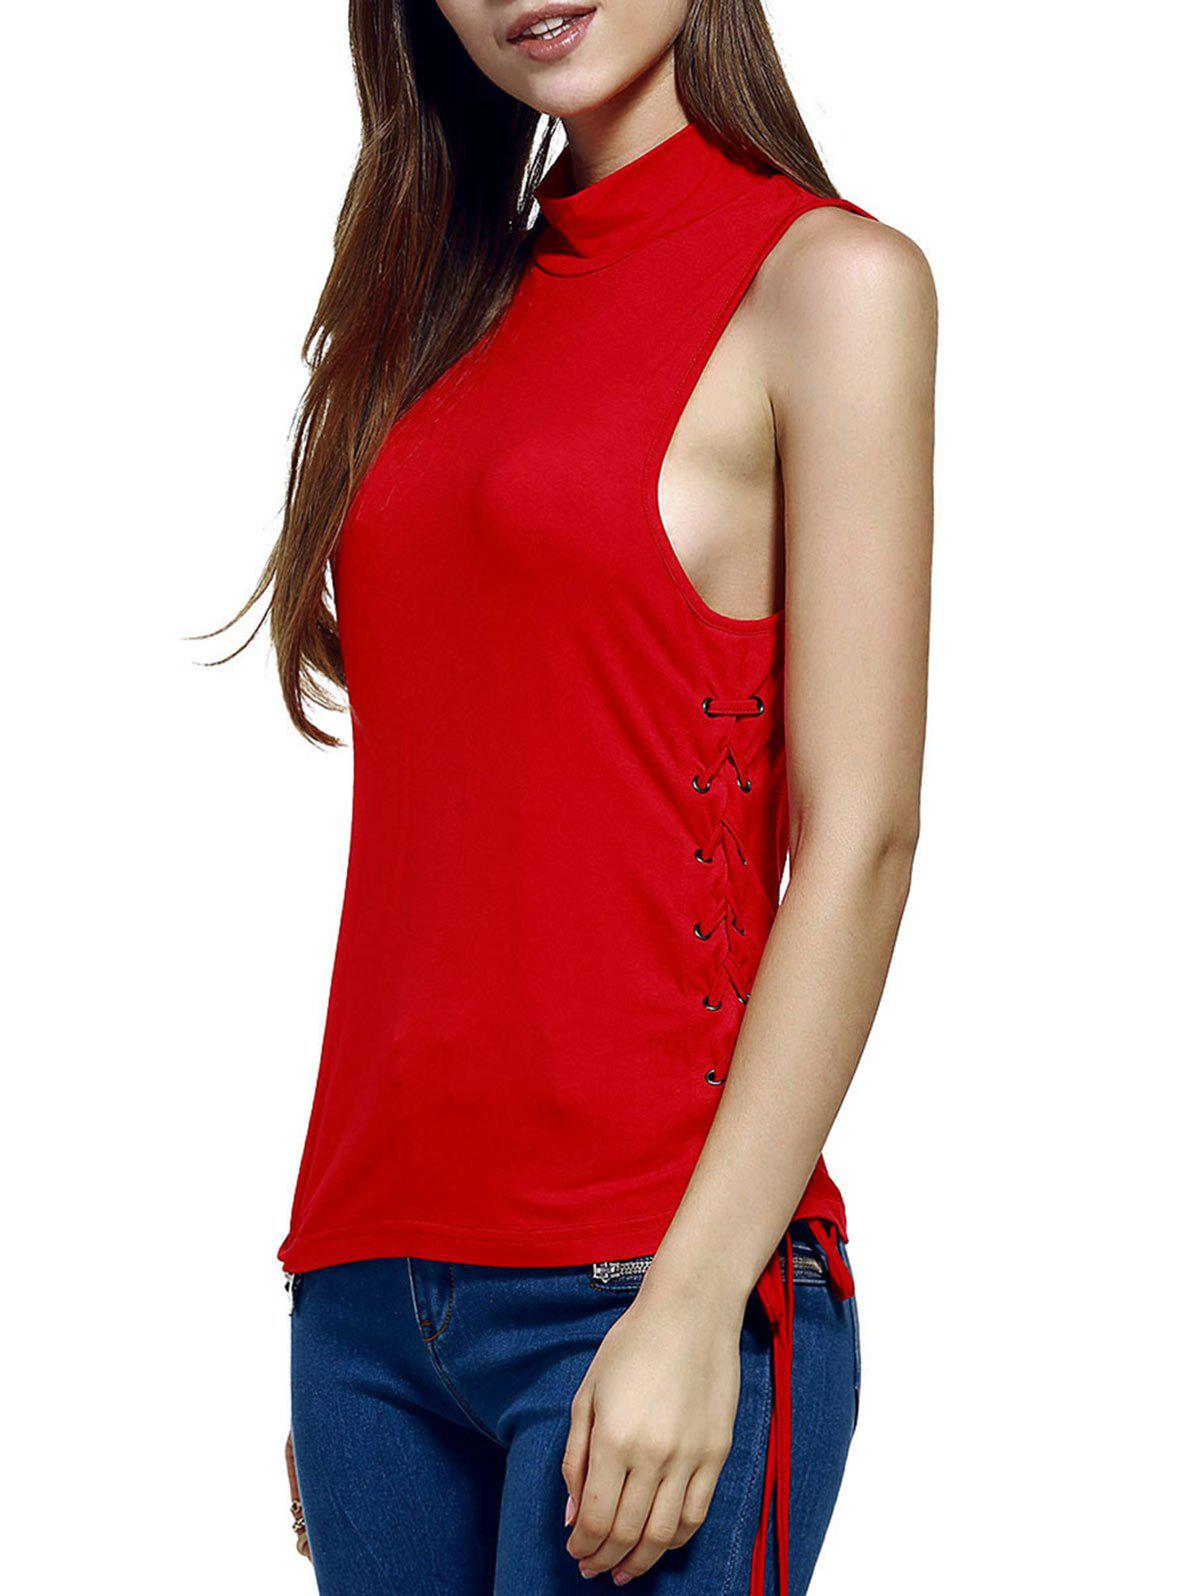 New Women's Trendy Stand Neck Pure Color Lace-Up Tank Top